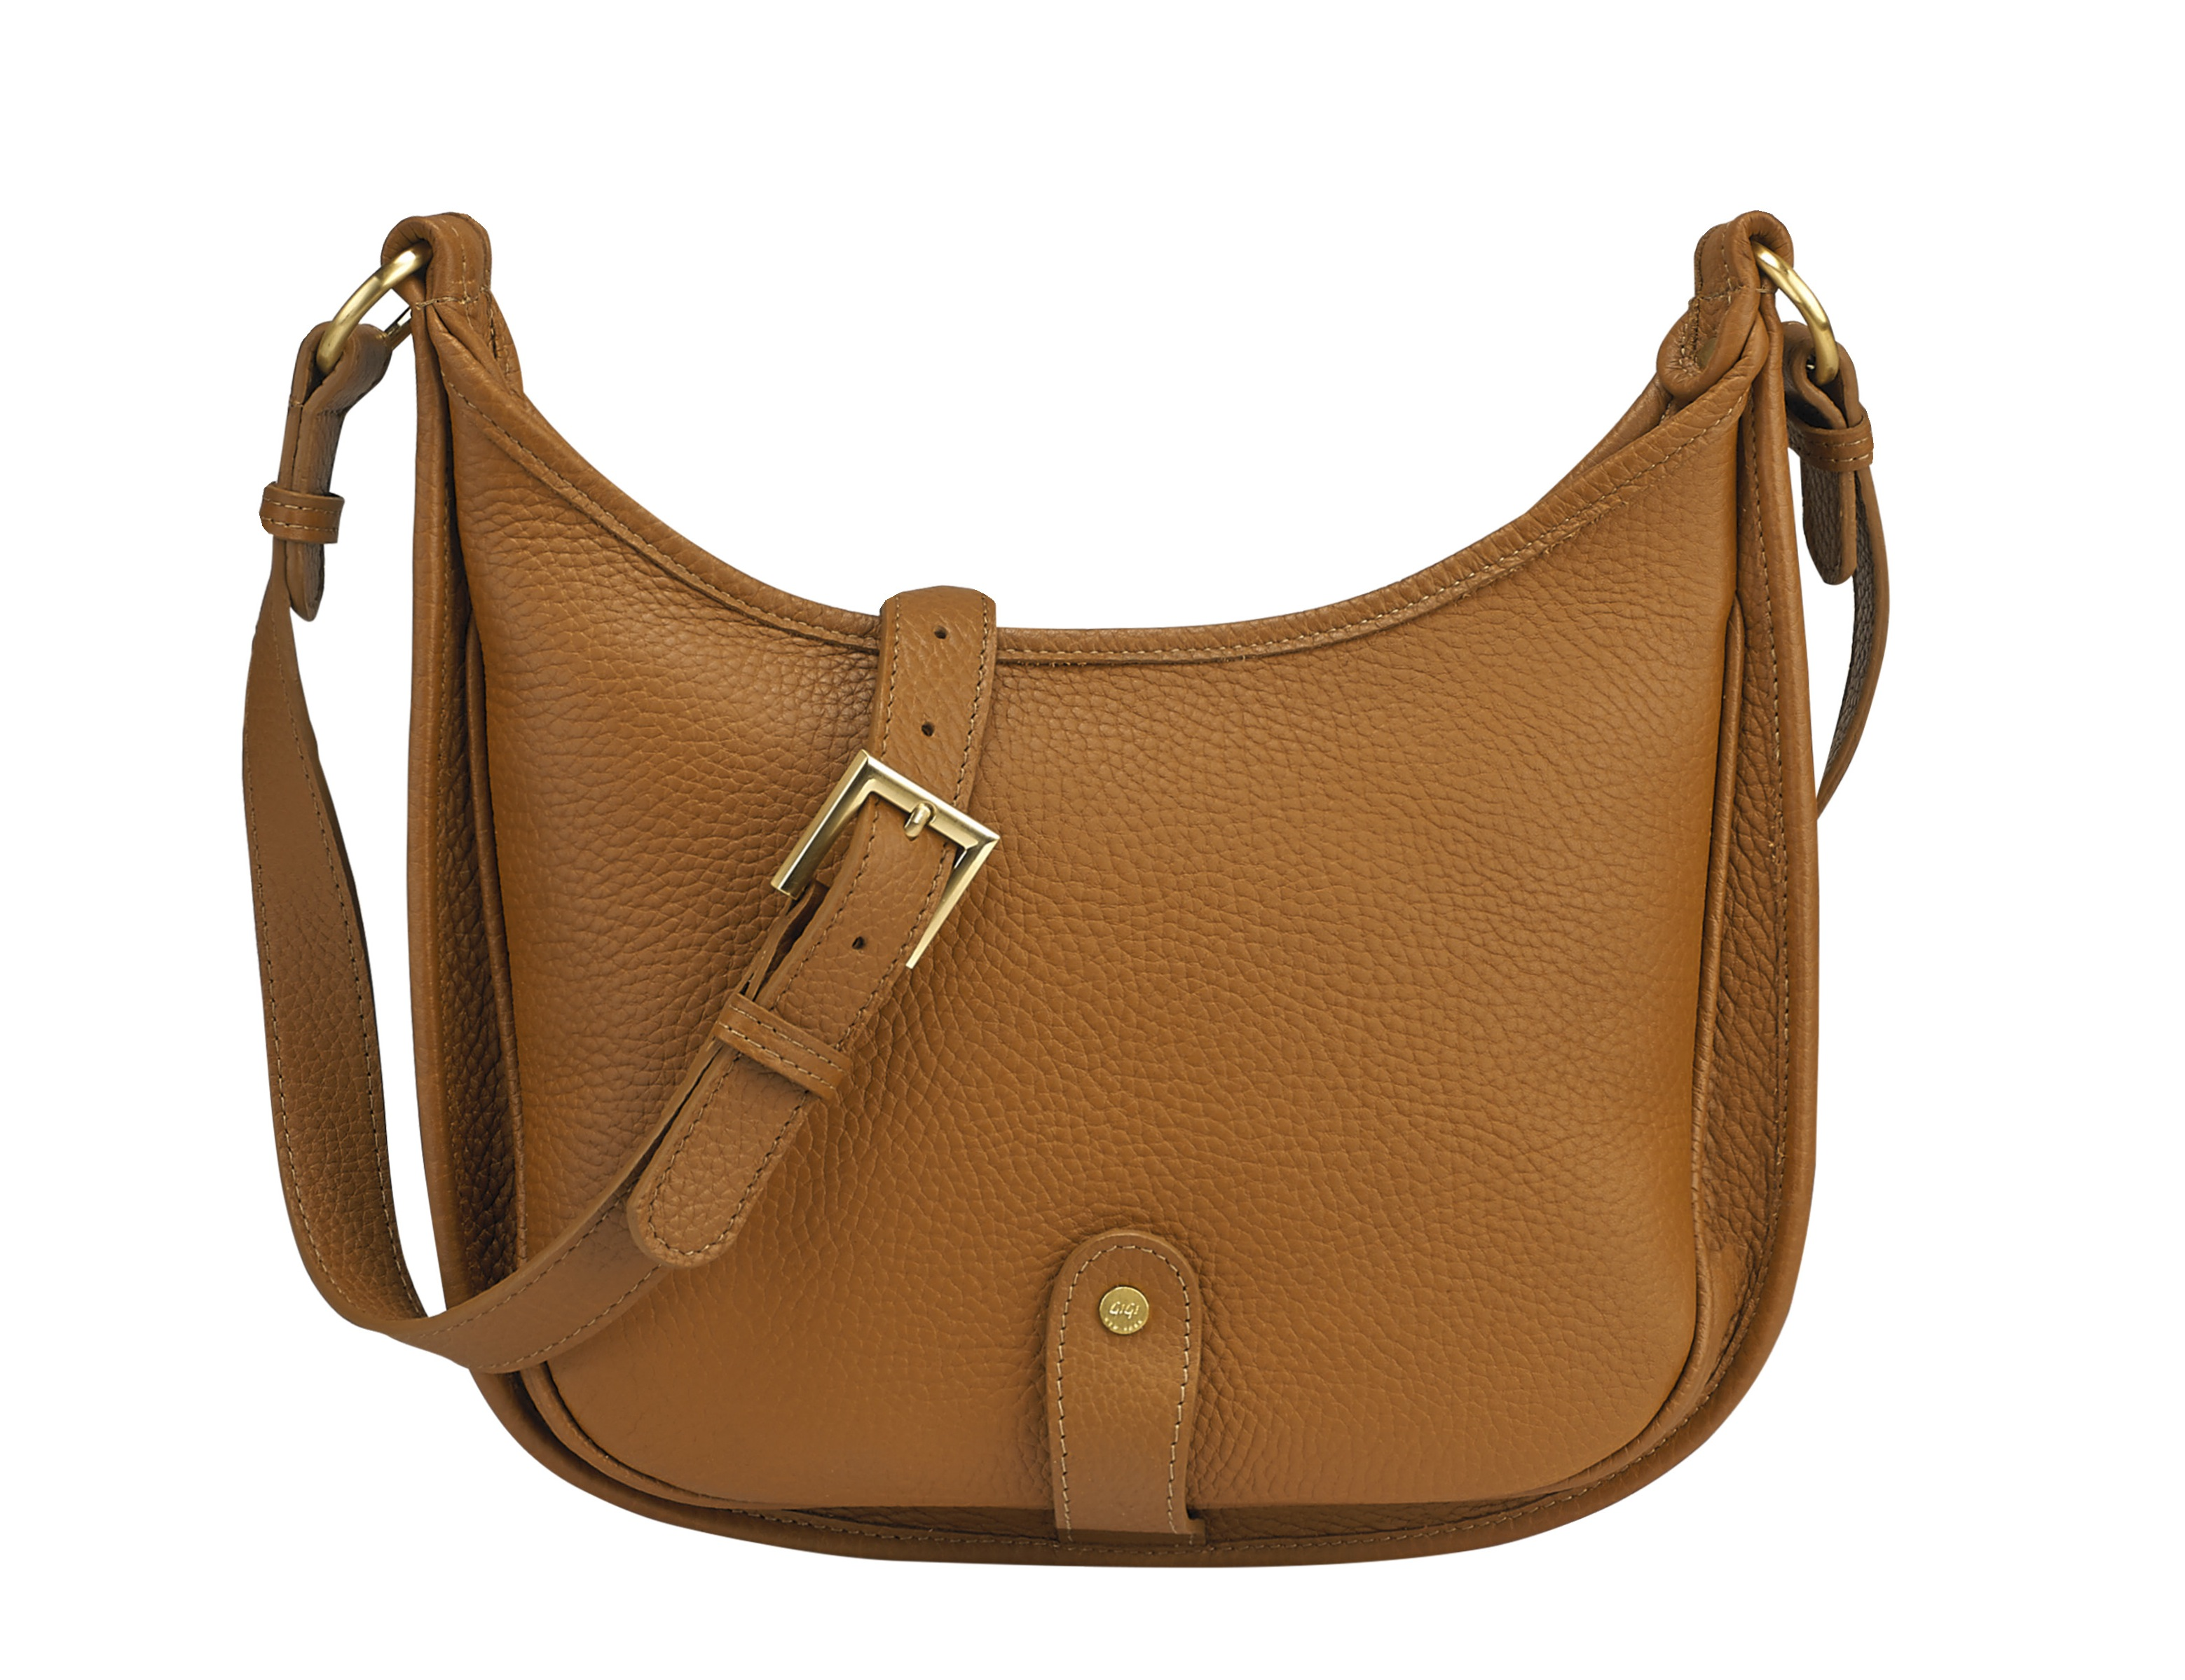 image: Casey Crossbody, GiGi New York